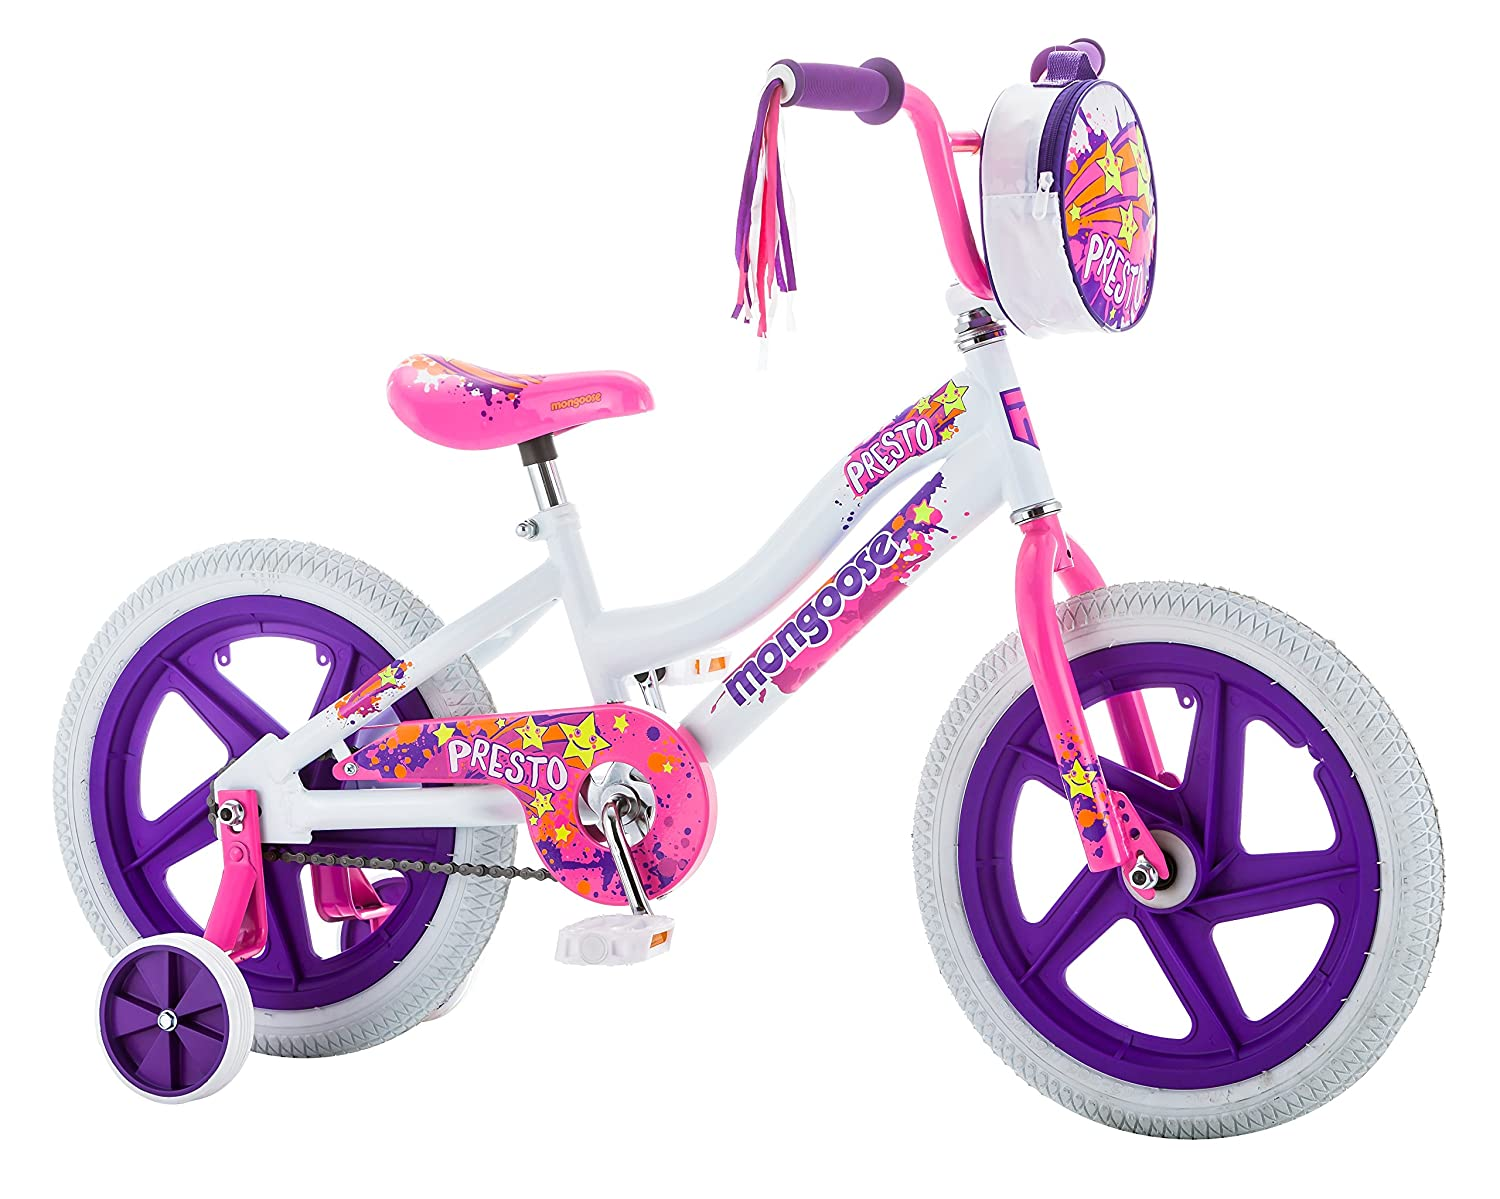 Mongoose Girls Presto Bicycle with 16 Wheels, White by Mongoose B0183SEYRK